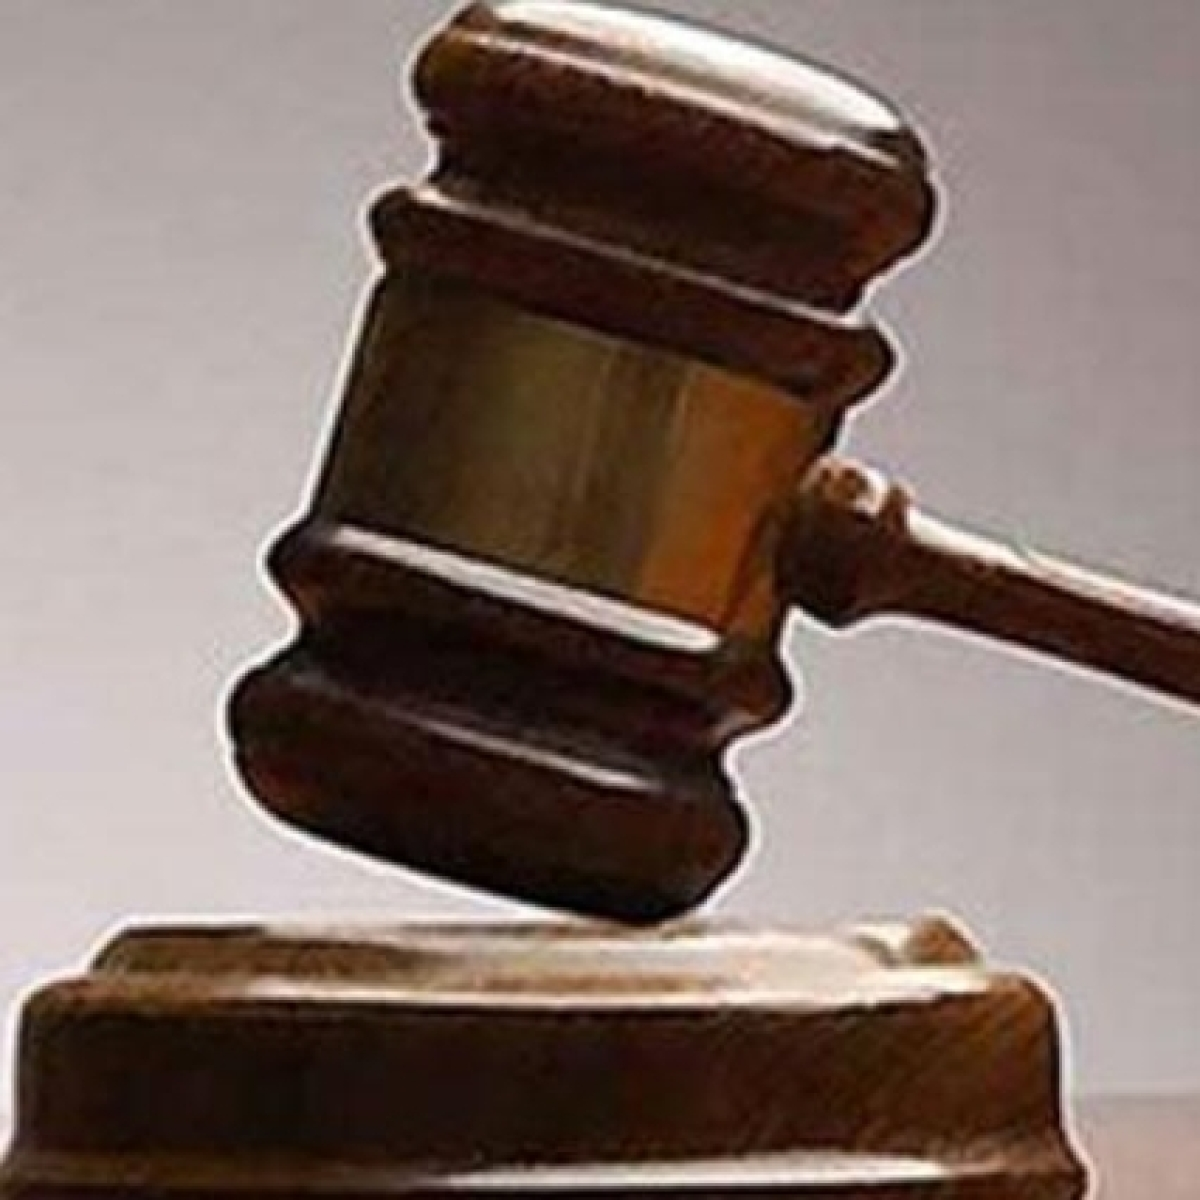 Court rejects bail of priest accused of sexual assault on minor boy